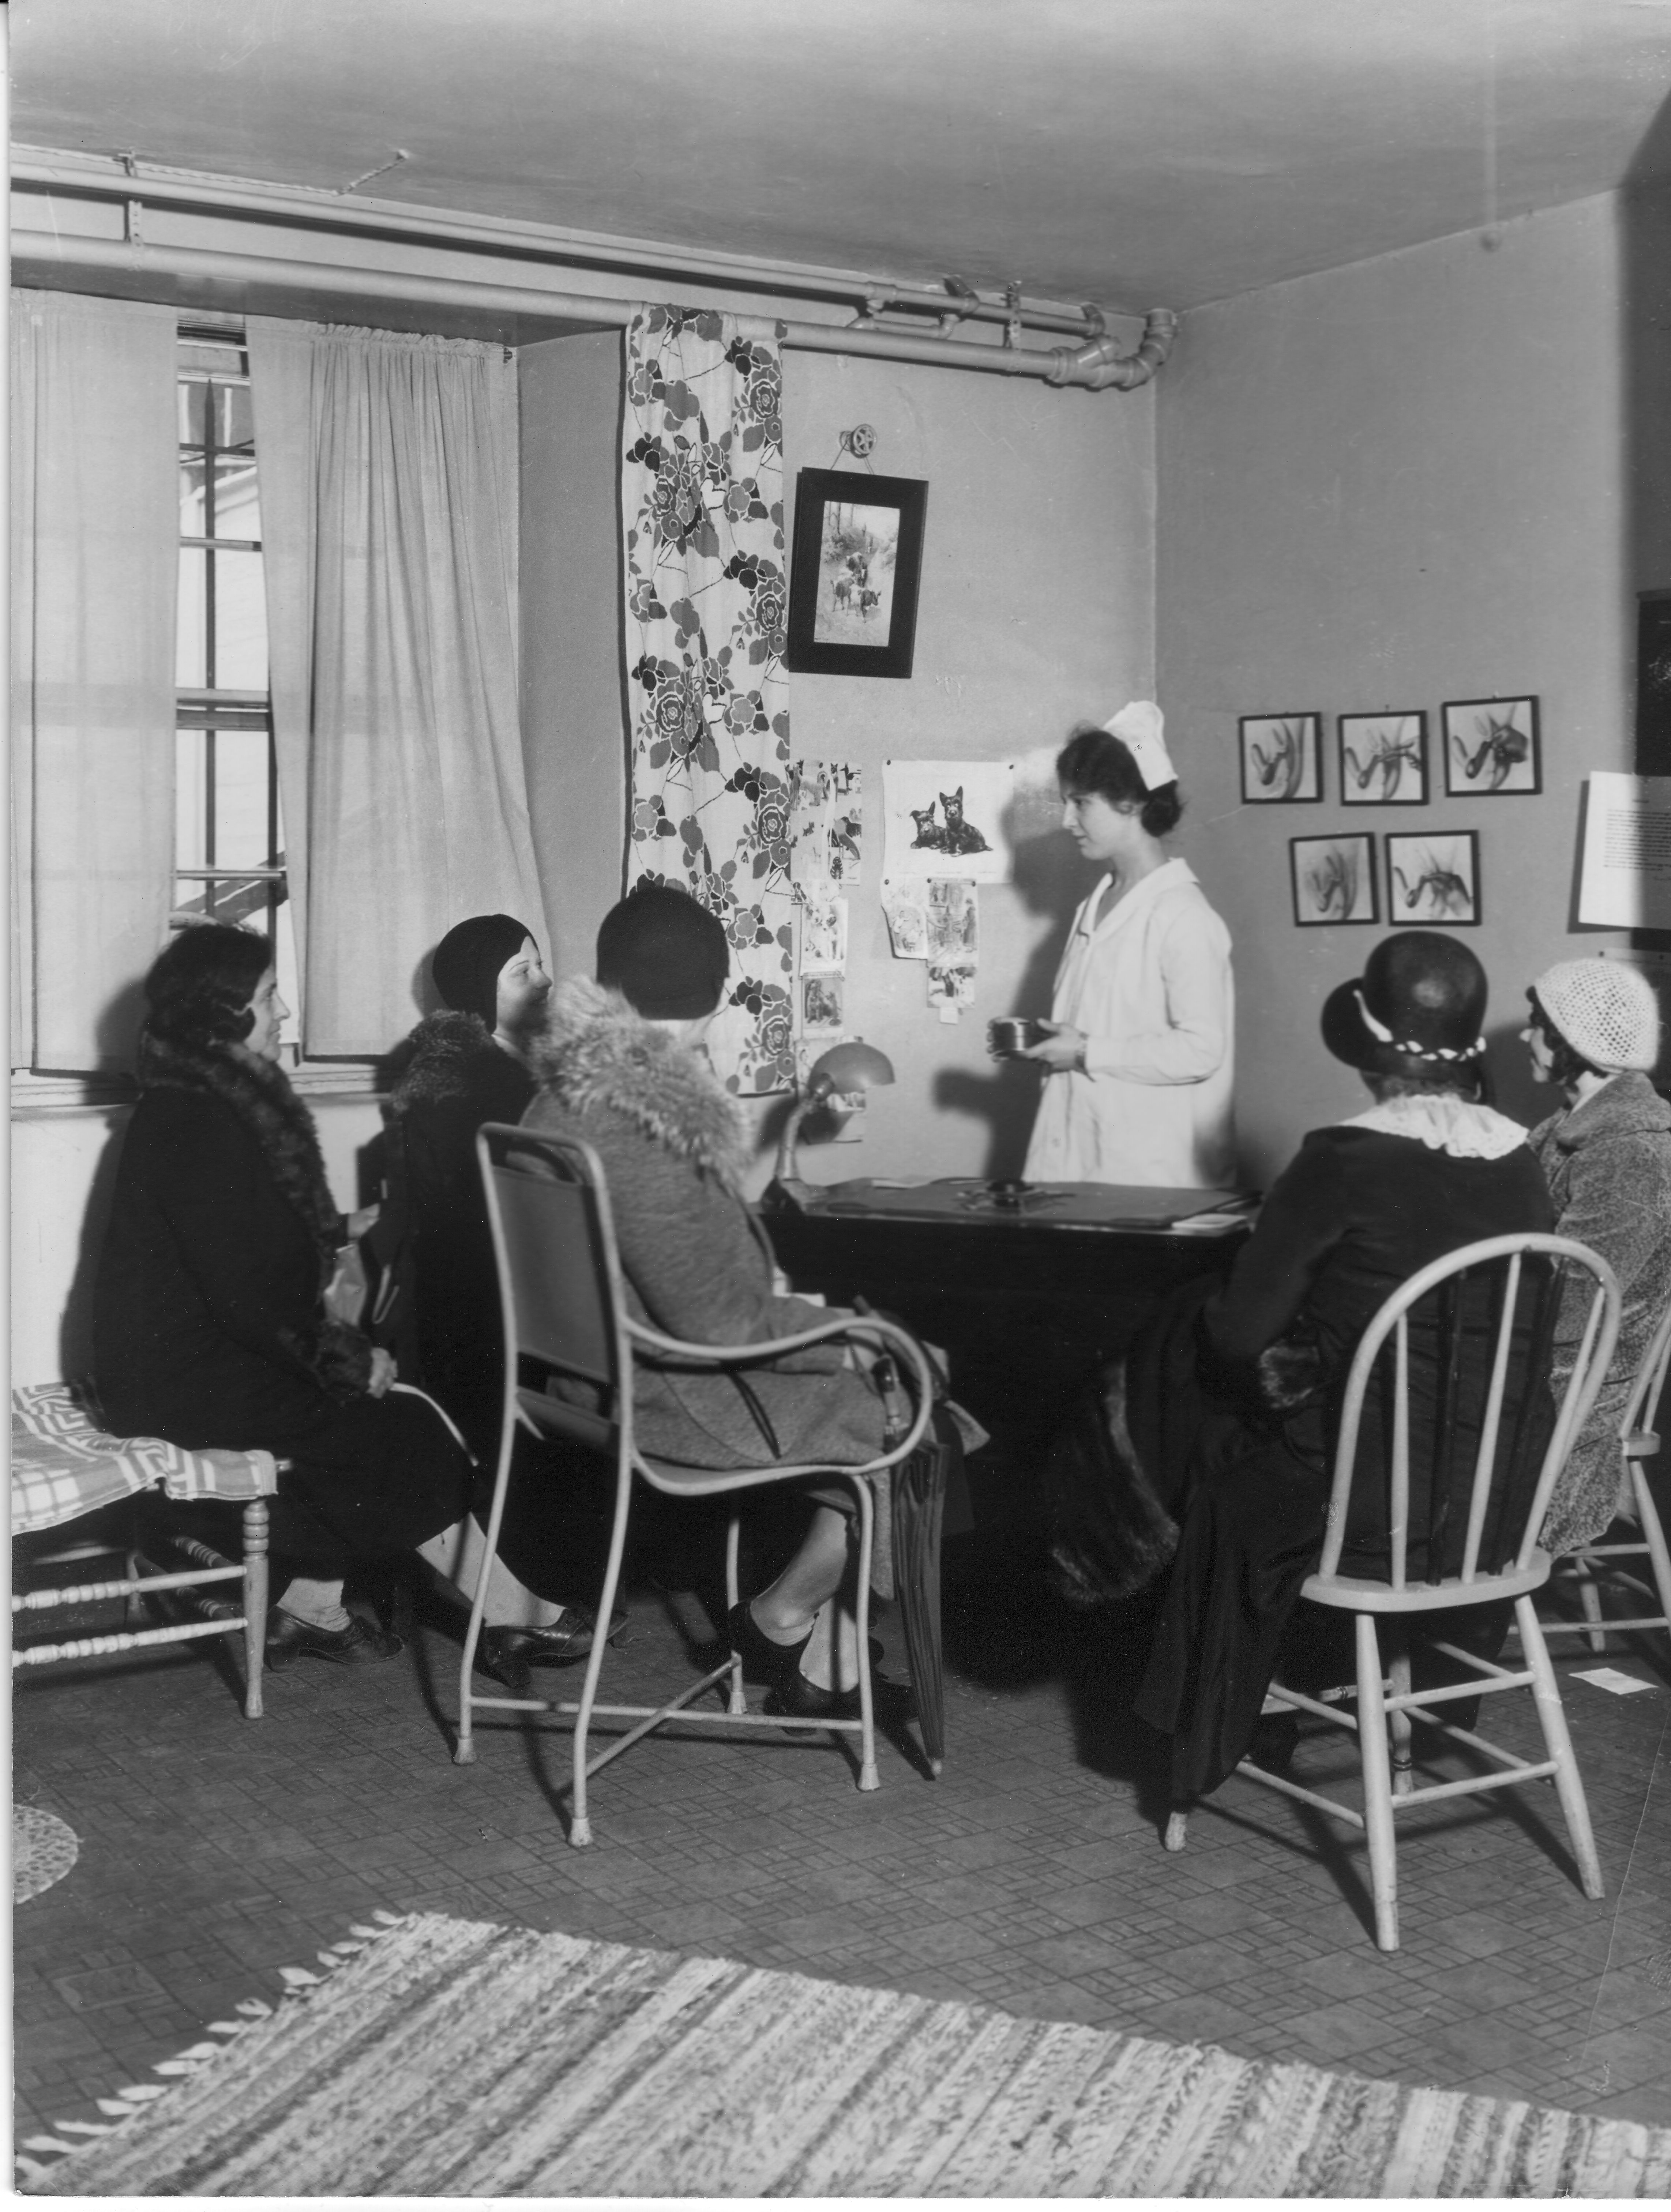 Birth Control Clinical Research Bureau in New York, photo via the Margaret Sanger Papers, no known restrictions on use